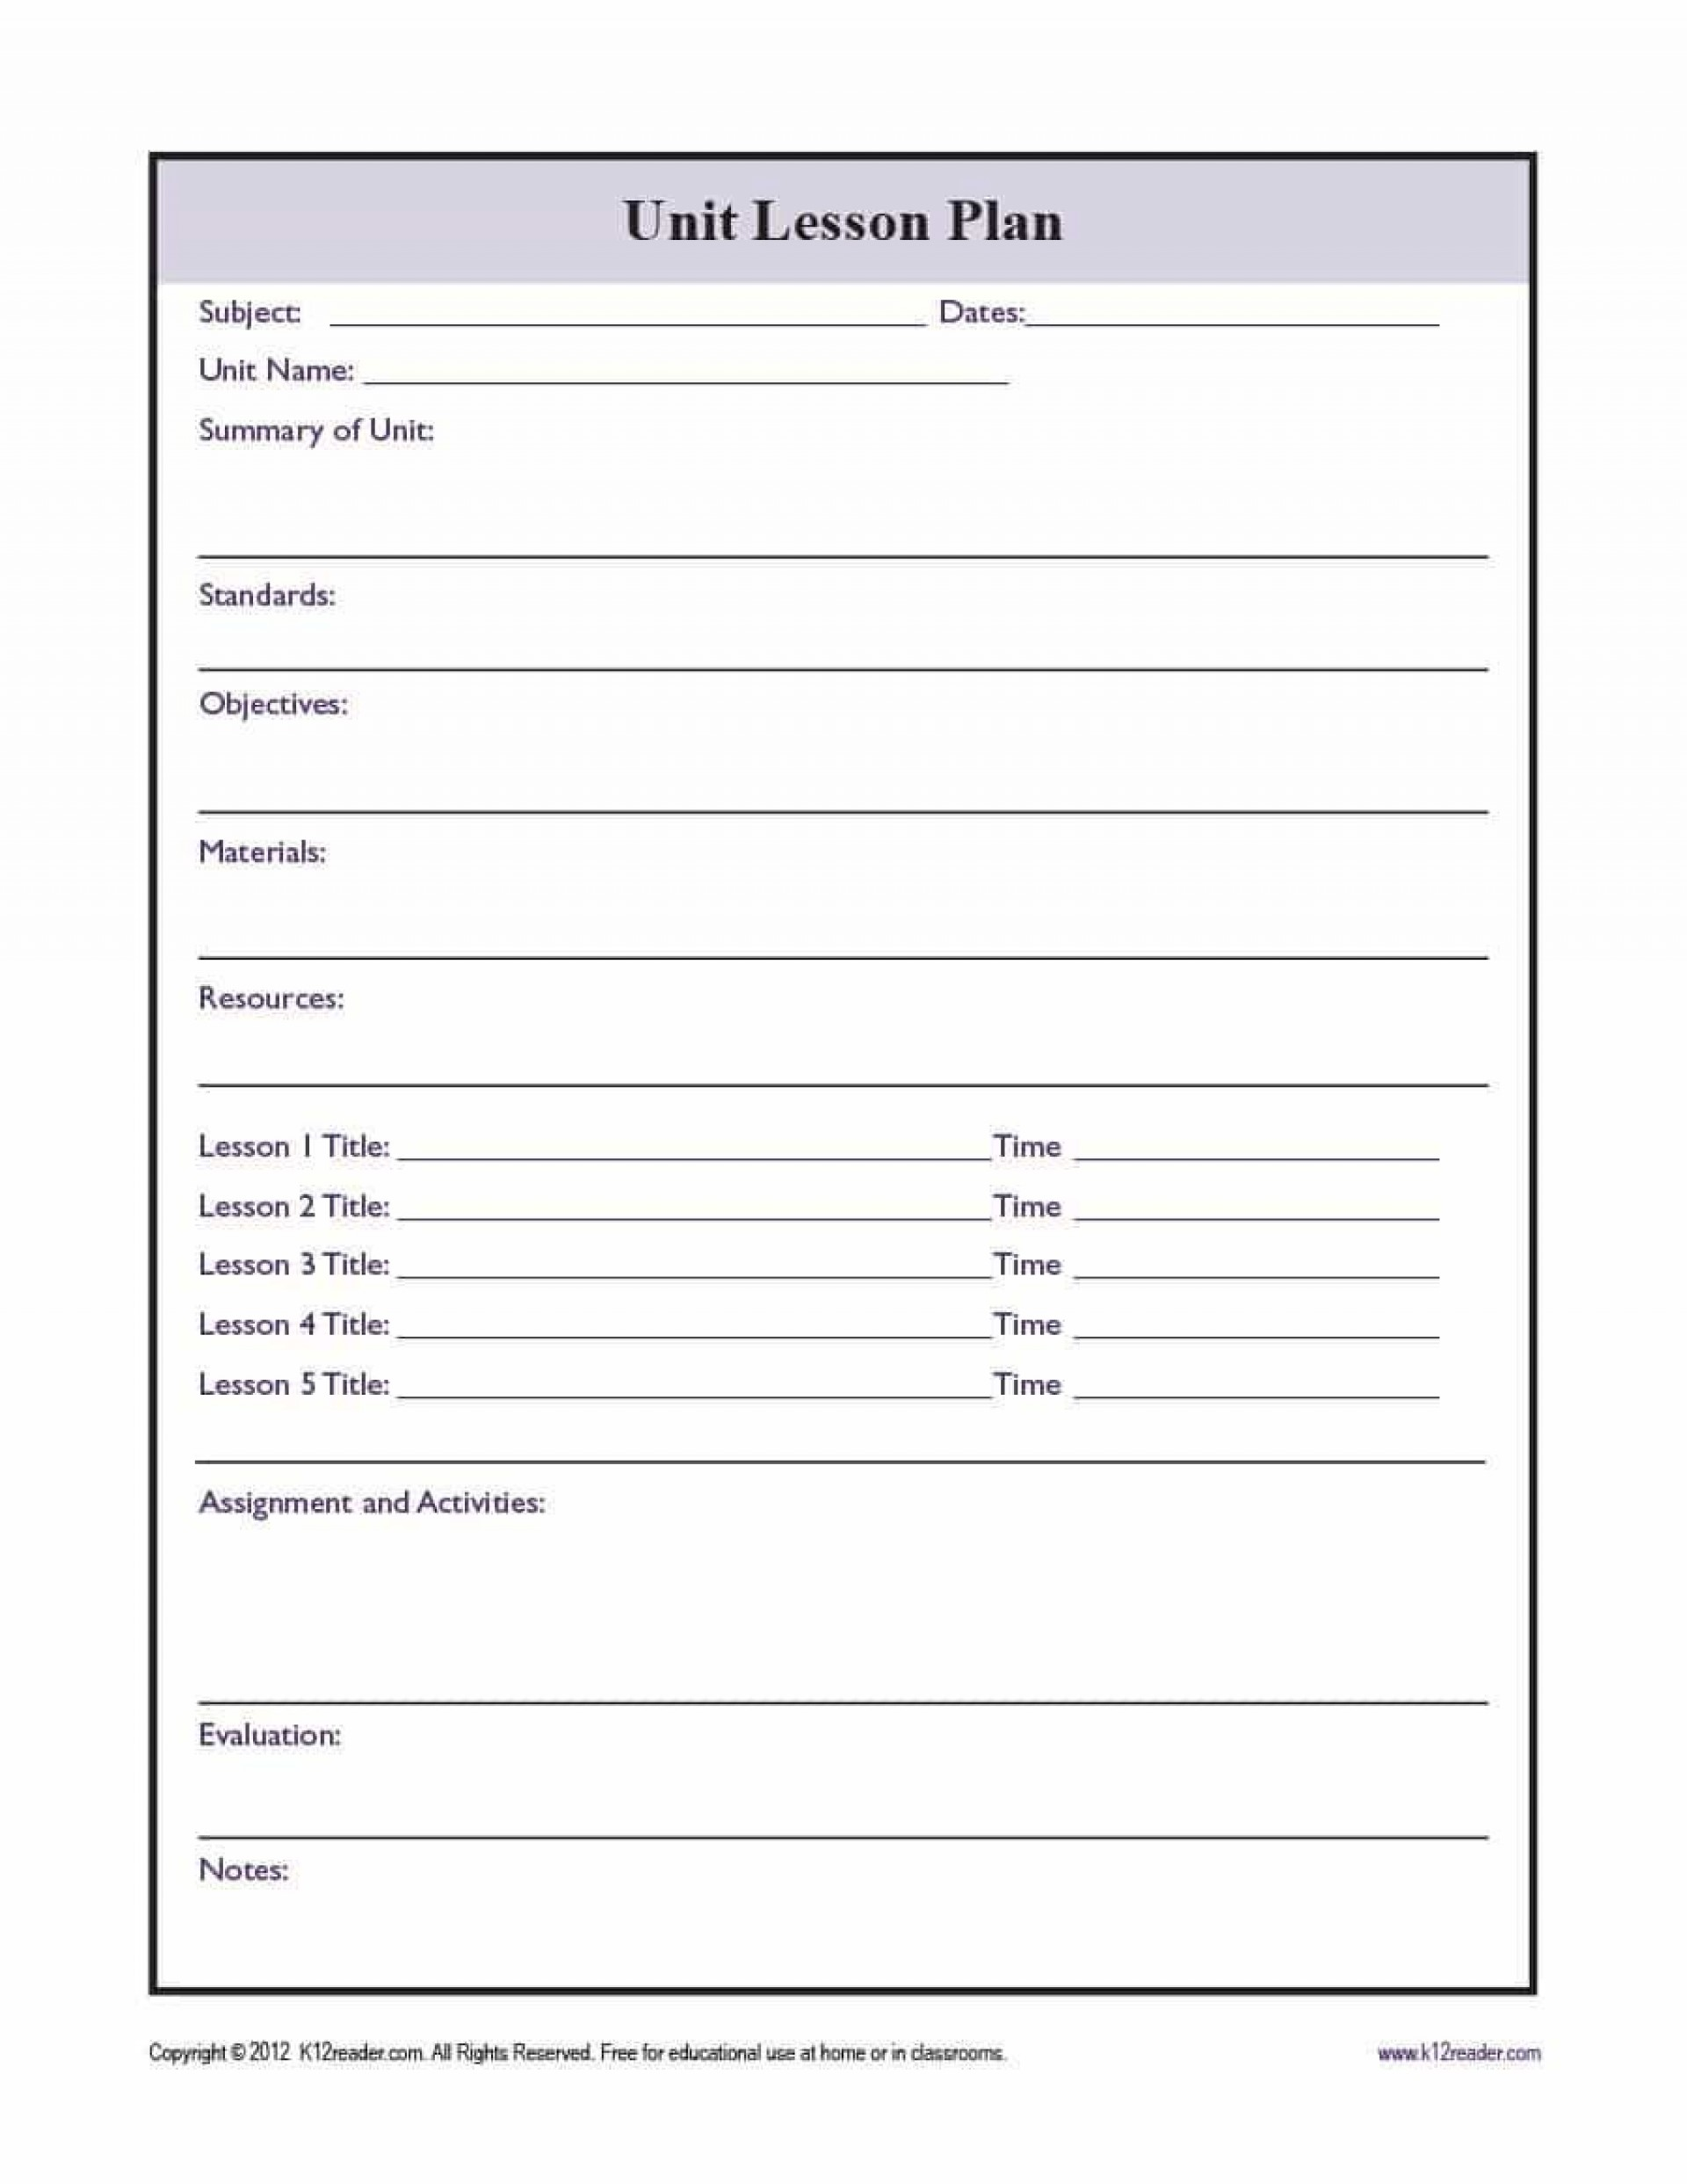 004 Unbelievable Unit Lesson Plan Template Picture  Word Thematic Example Pdf1920